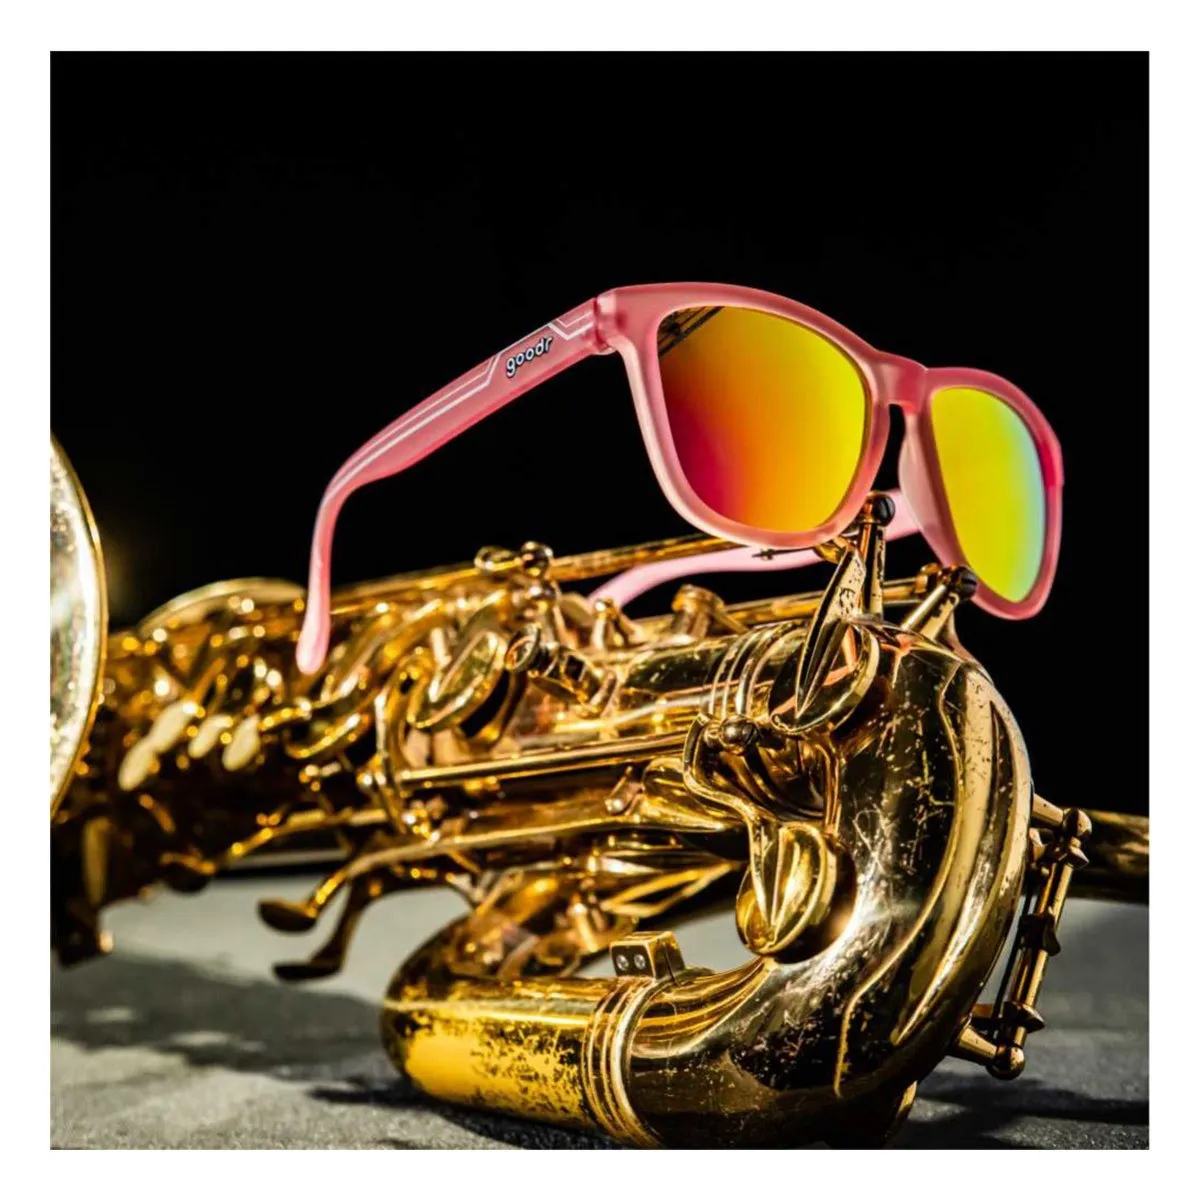 Oculos de Sol Goodr -   I WANNA SAX YOU UP